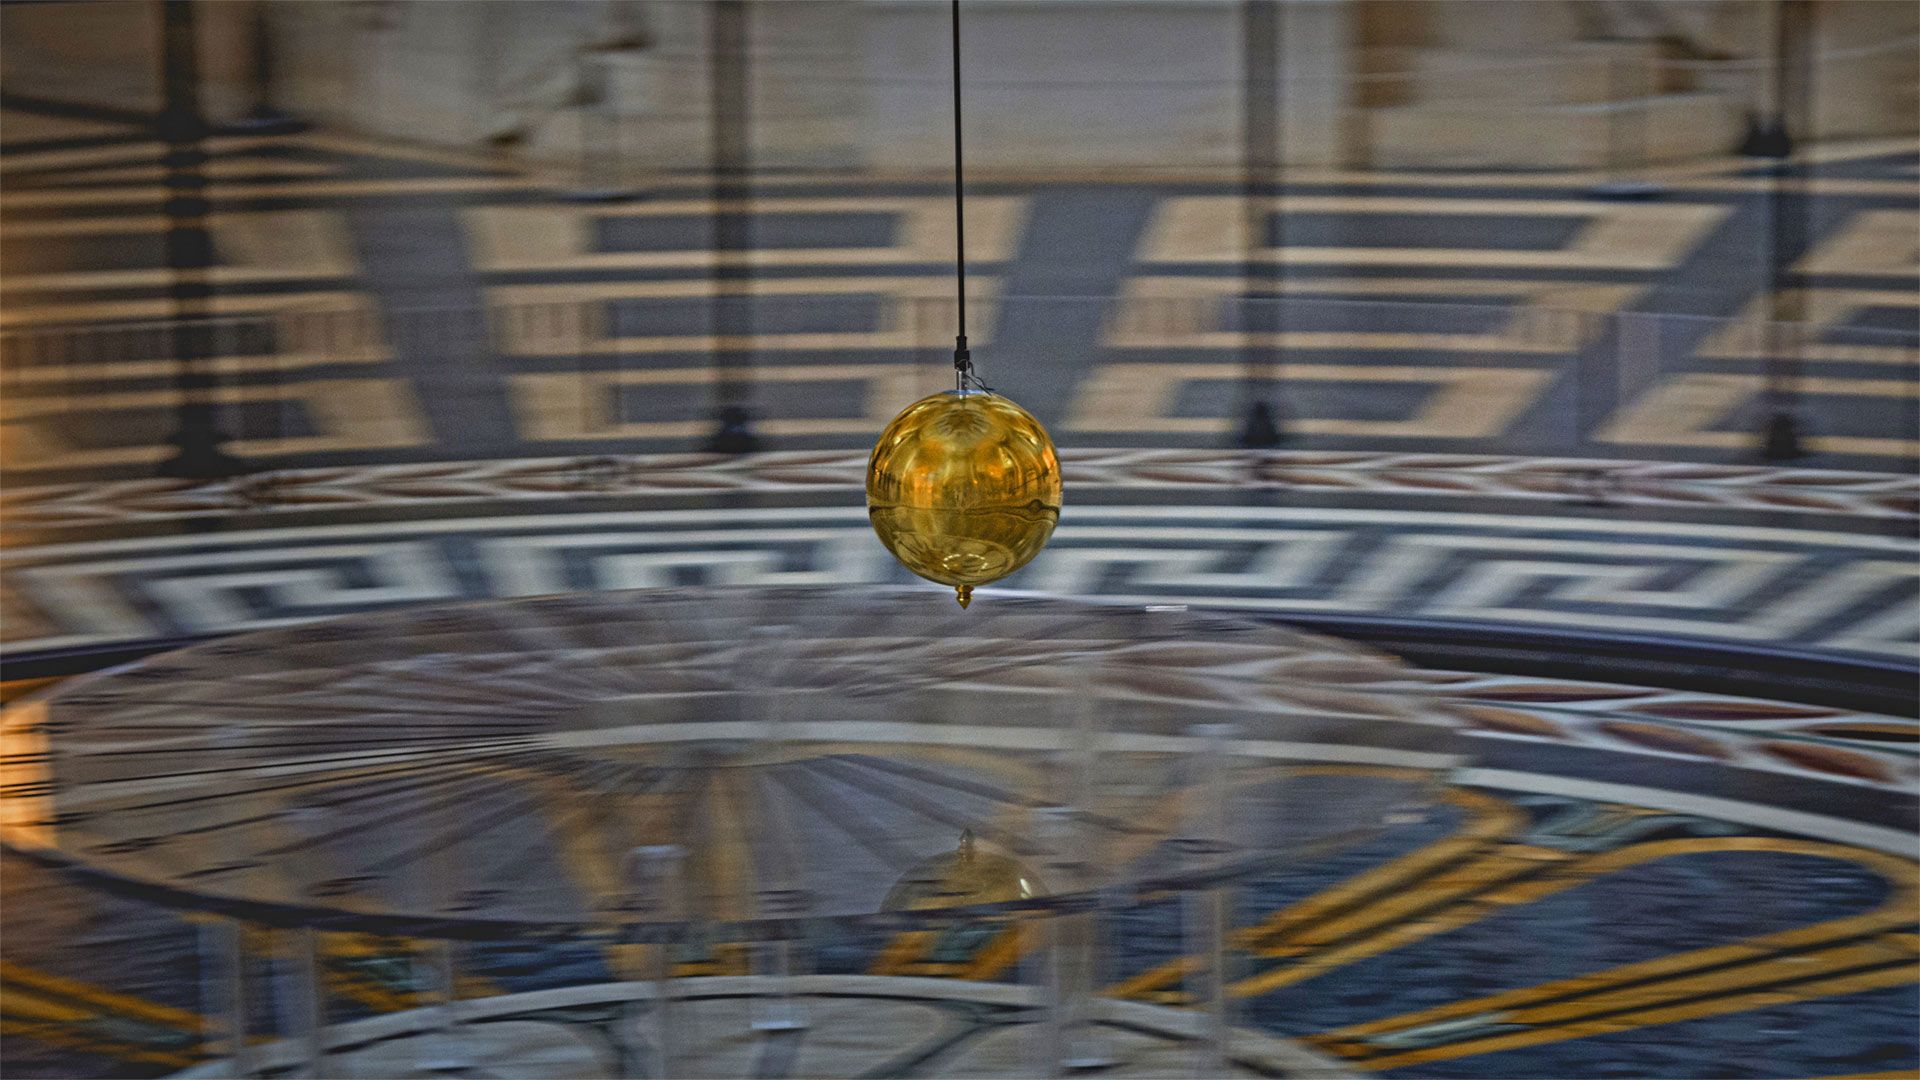 Foucault pendulum at the Panthéon in Paris, France (© Adolf/Adobe Stock)(Bing United States)